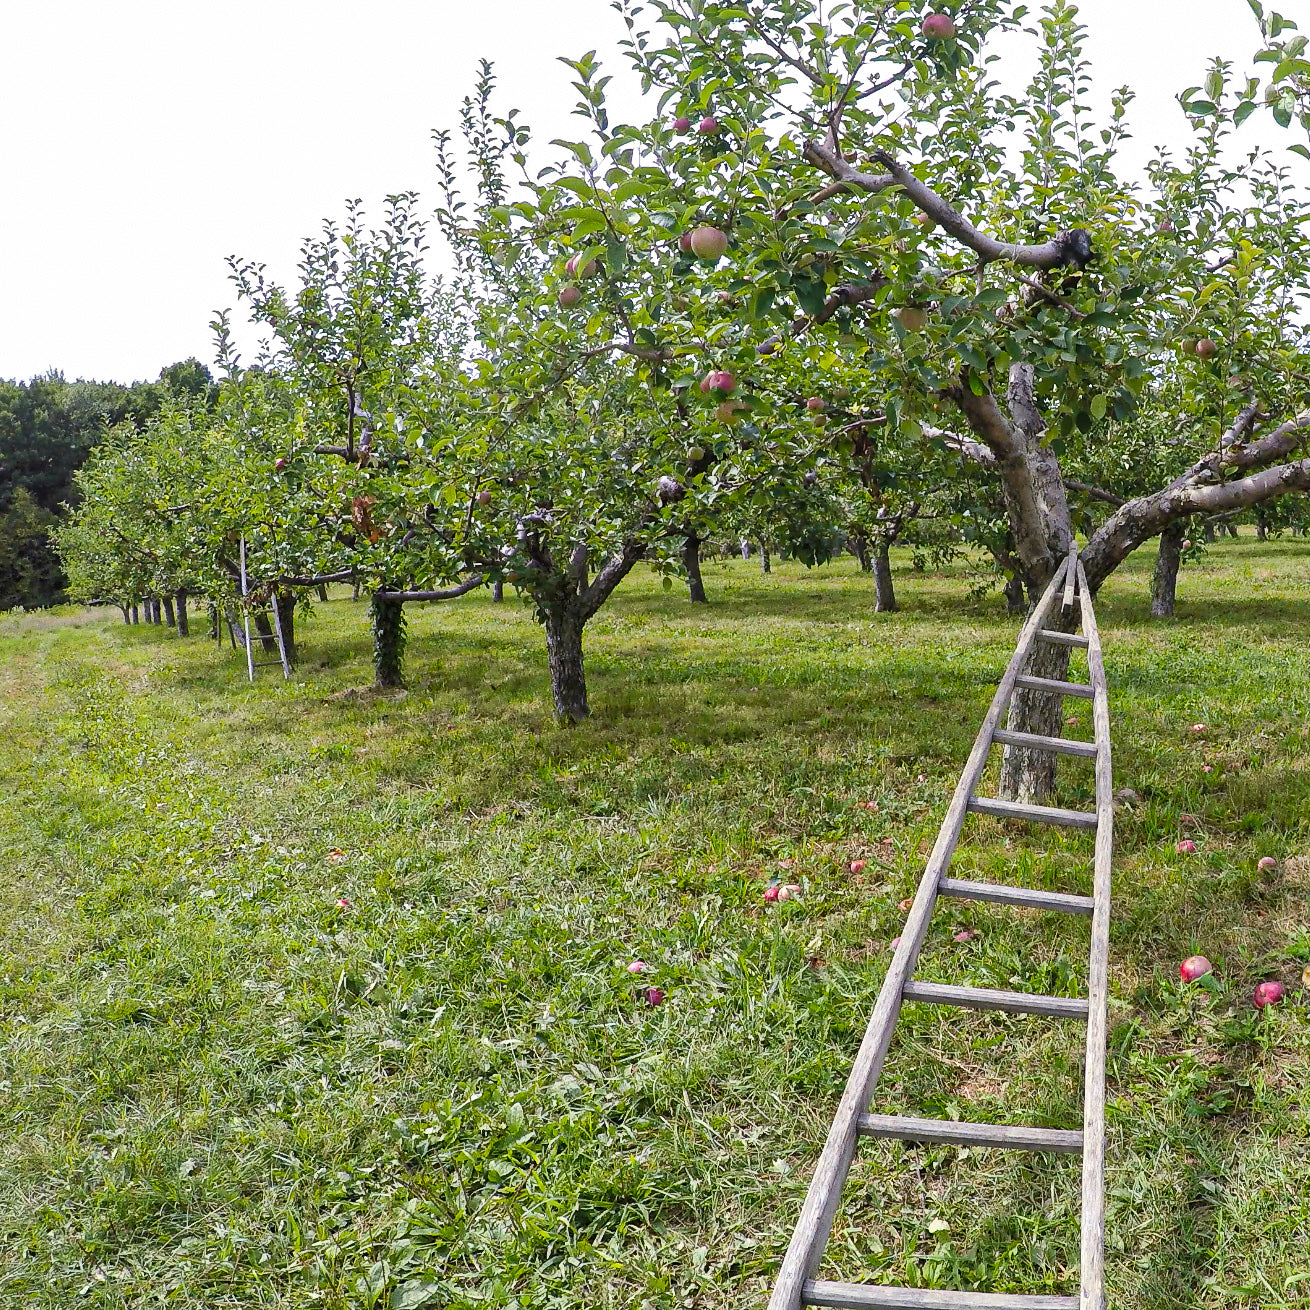 Apple Picking, Cider Drinking, Brick-Oven Pizza Eating Day Trip!